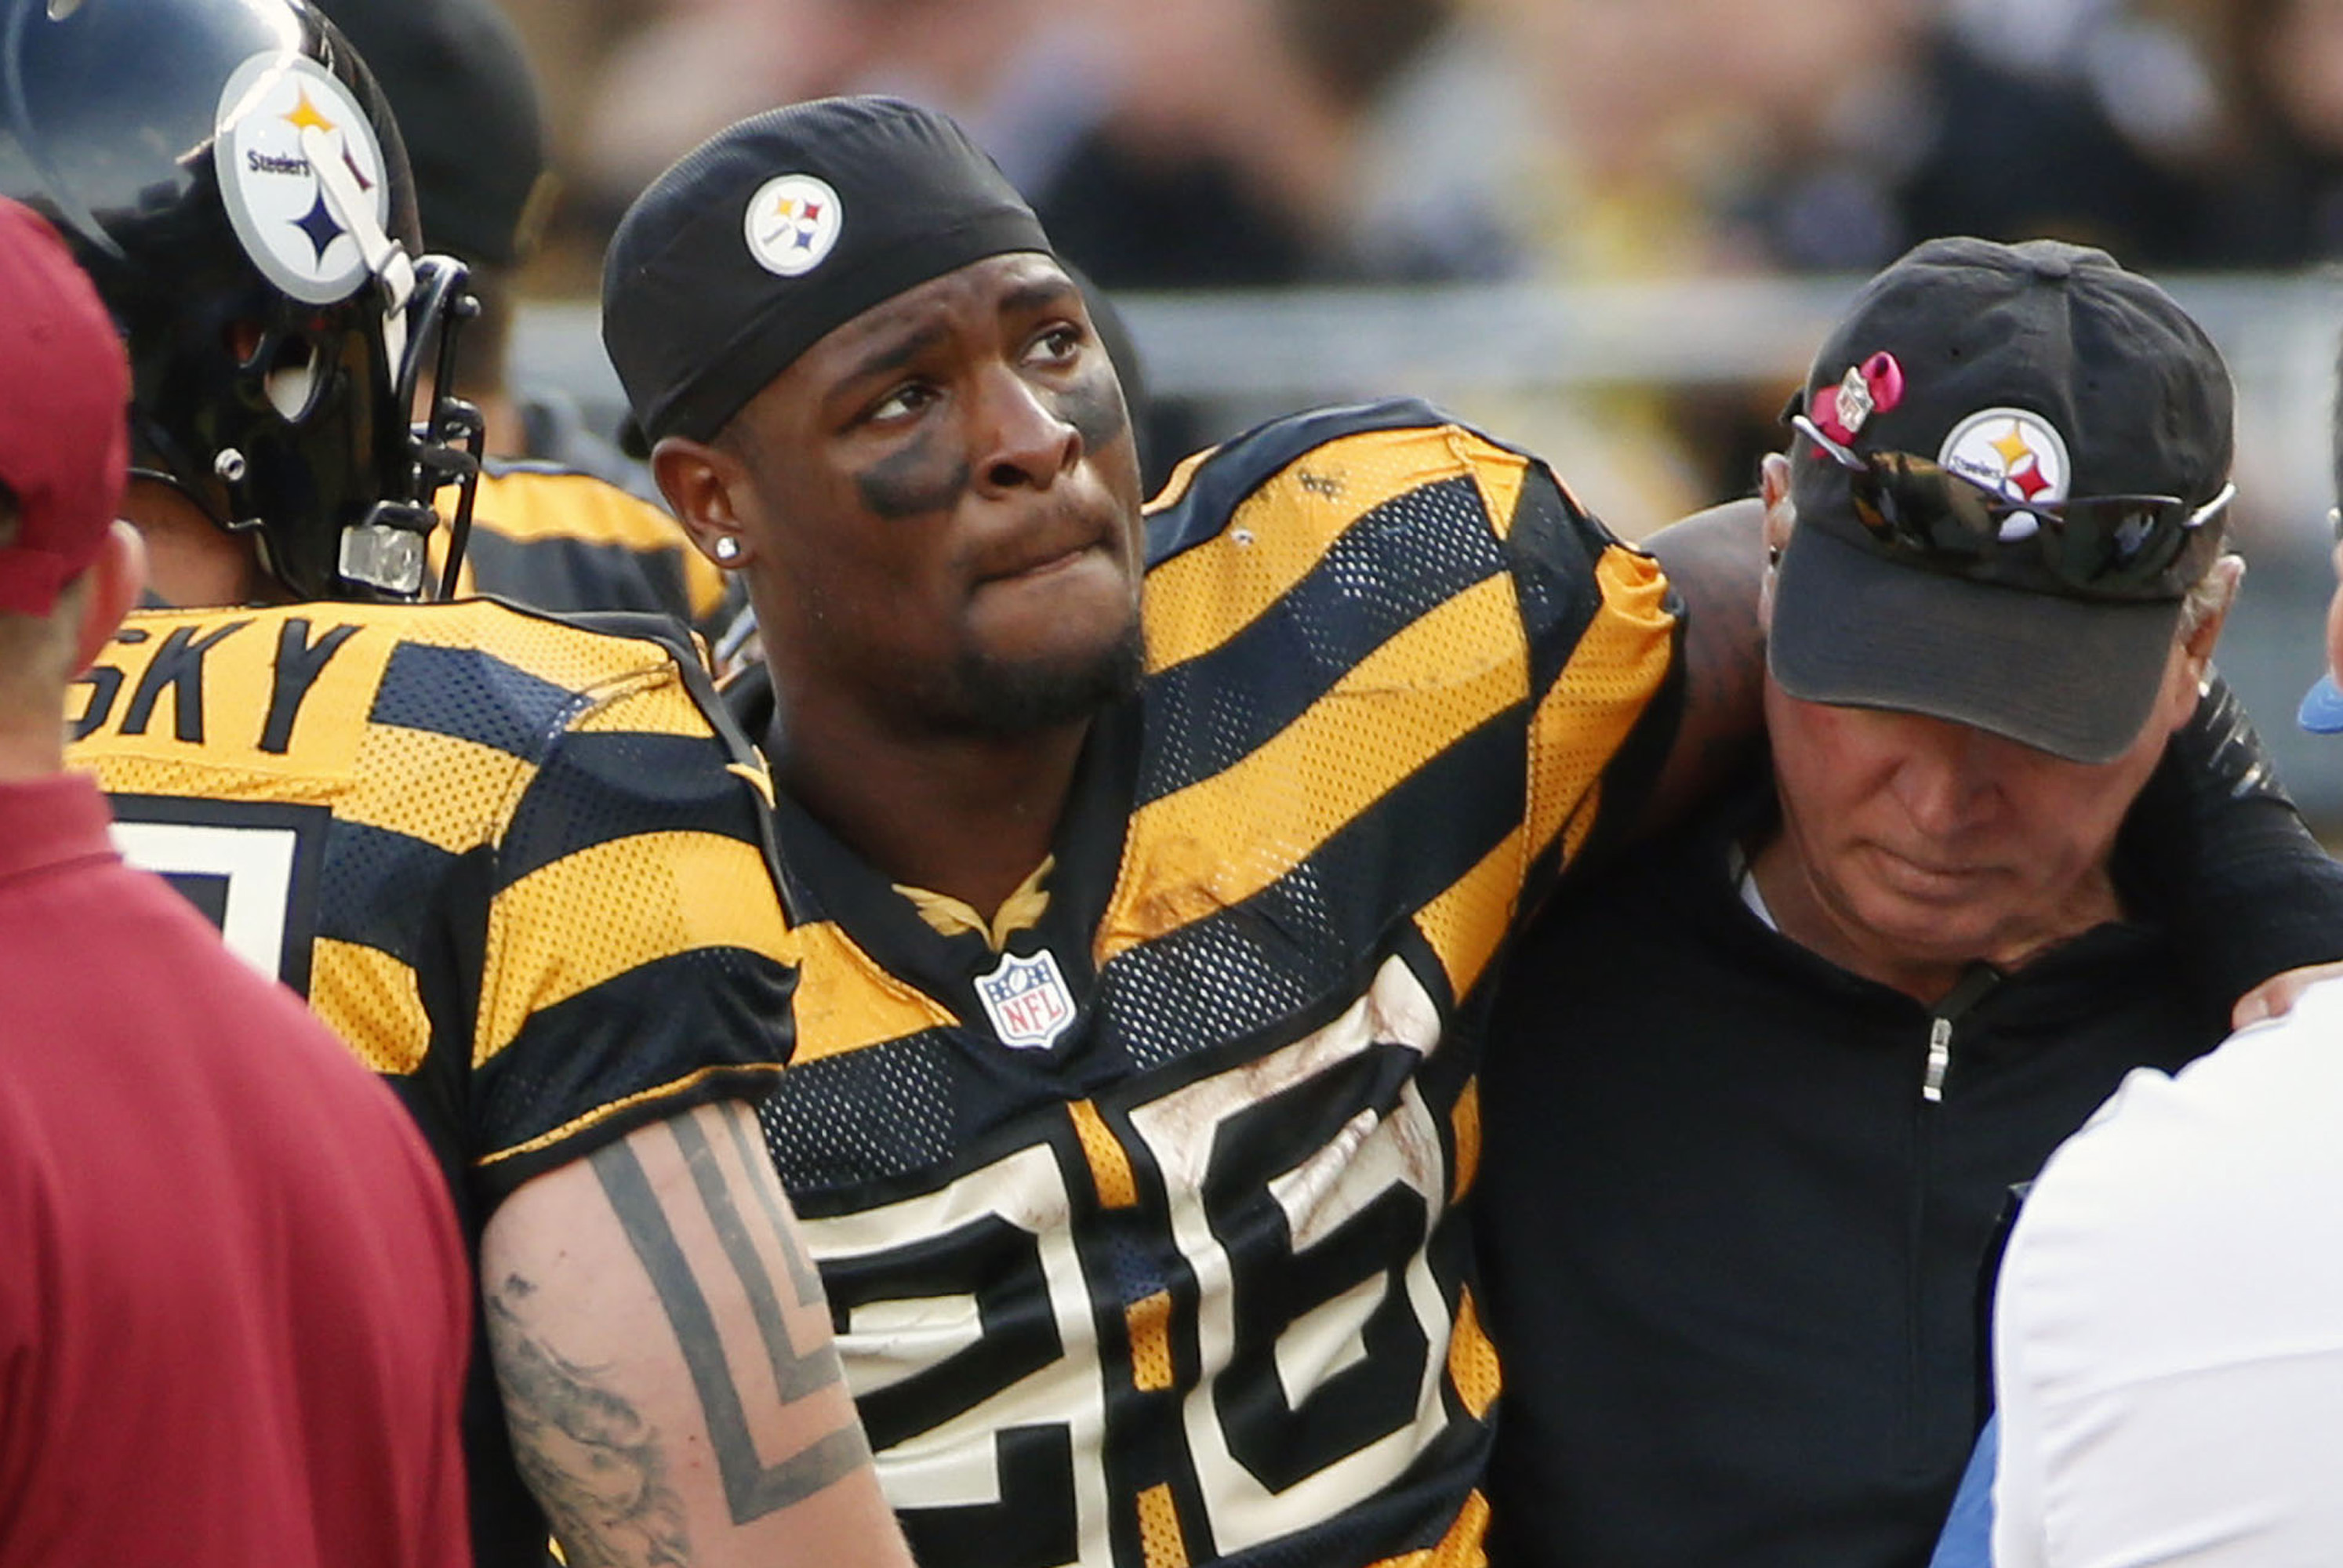 FILE - In this Nov. 1, 2015, file photo, Pittsburgh Steelers running back Le'Veon Bell (26) is helped from the field after being injured in an NFL football game against the Cincinnati Bengals in Pittsburgh. Bell is ready to serve his suspension and move o